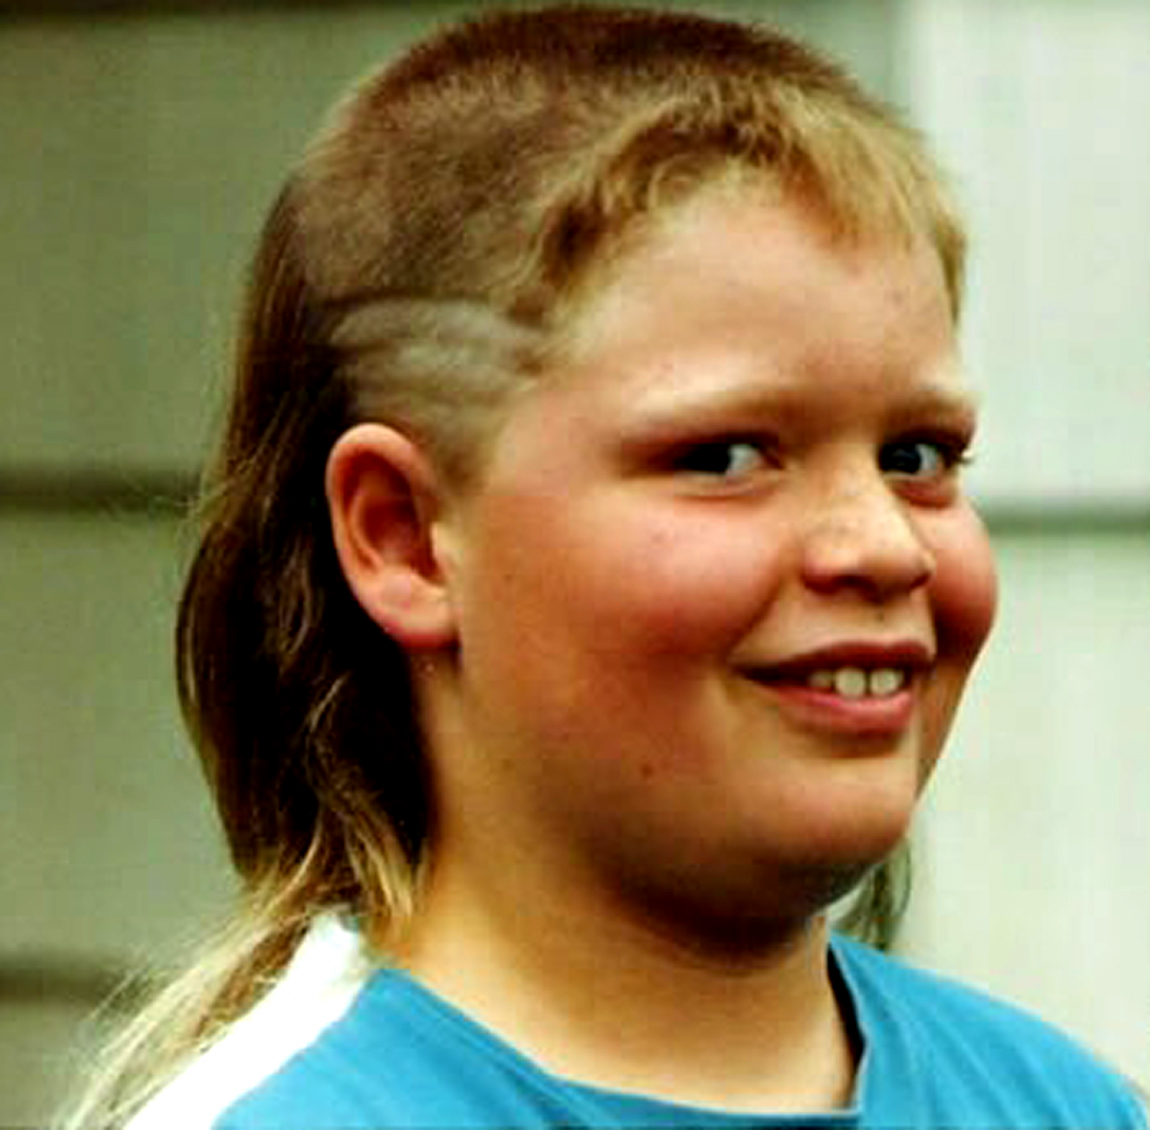 Quotes About Bad Haircuts 30 Quotes